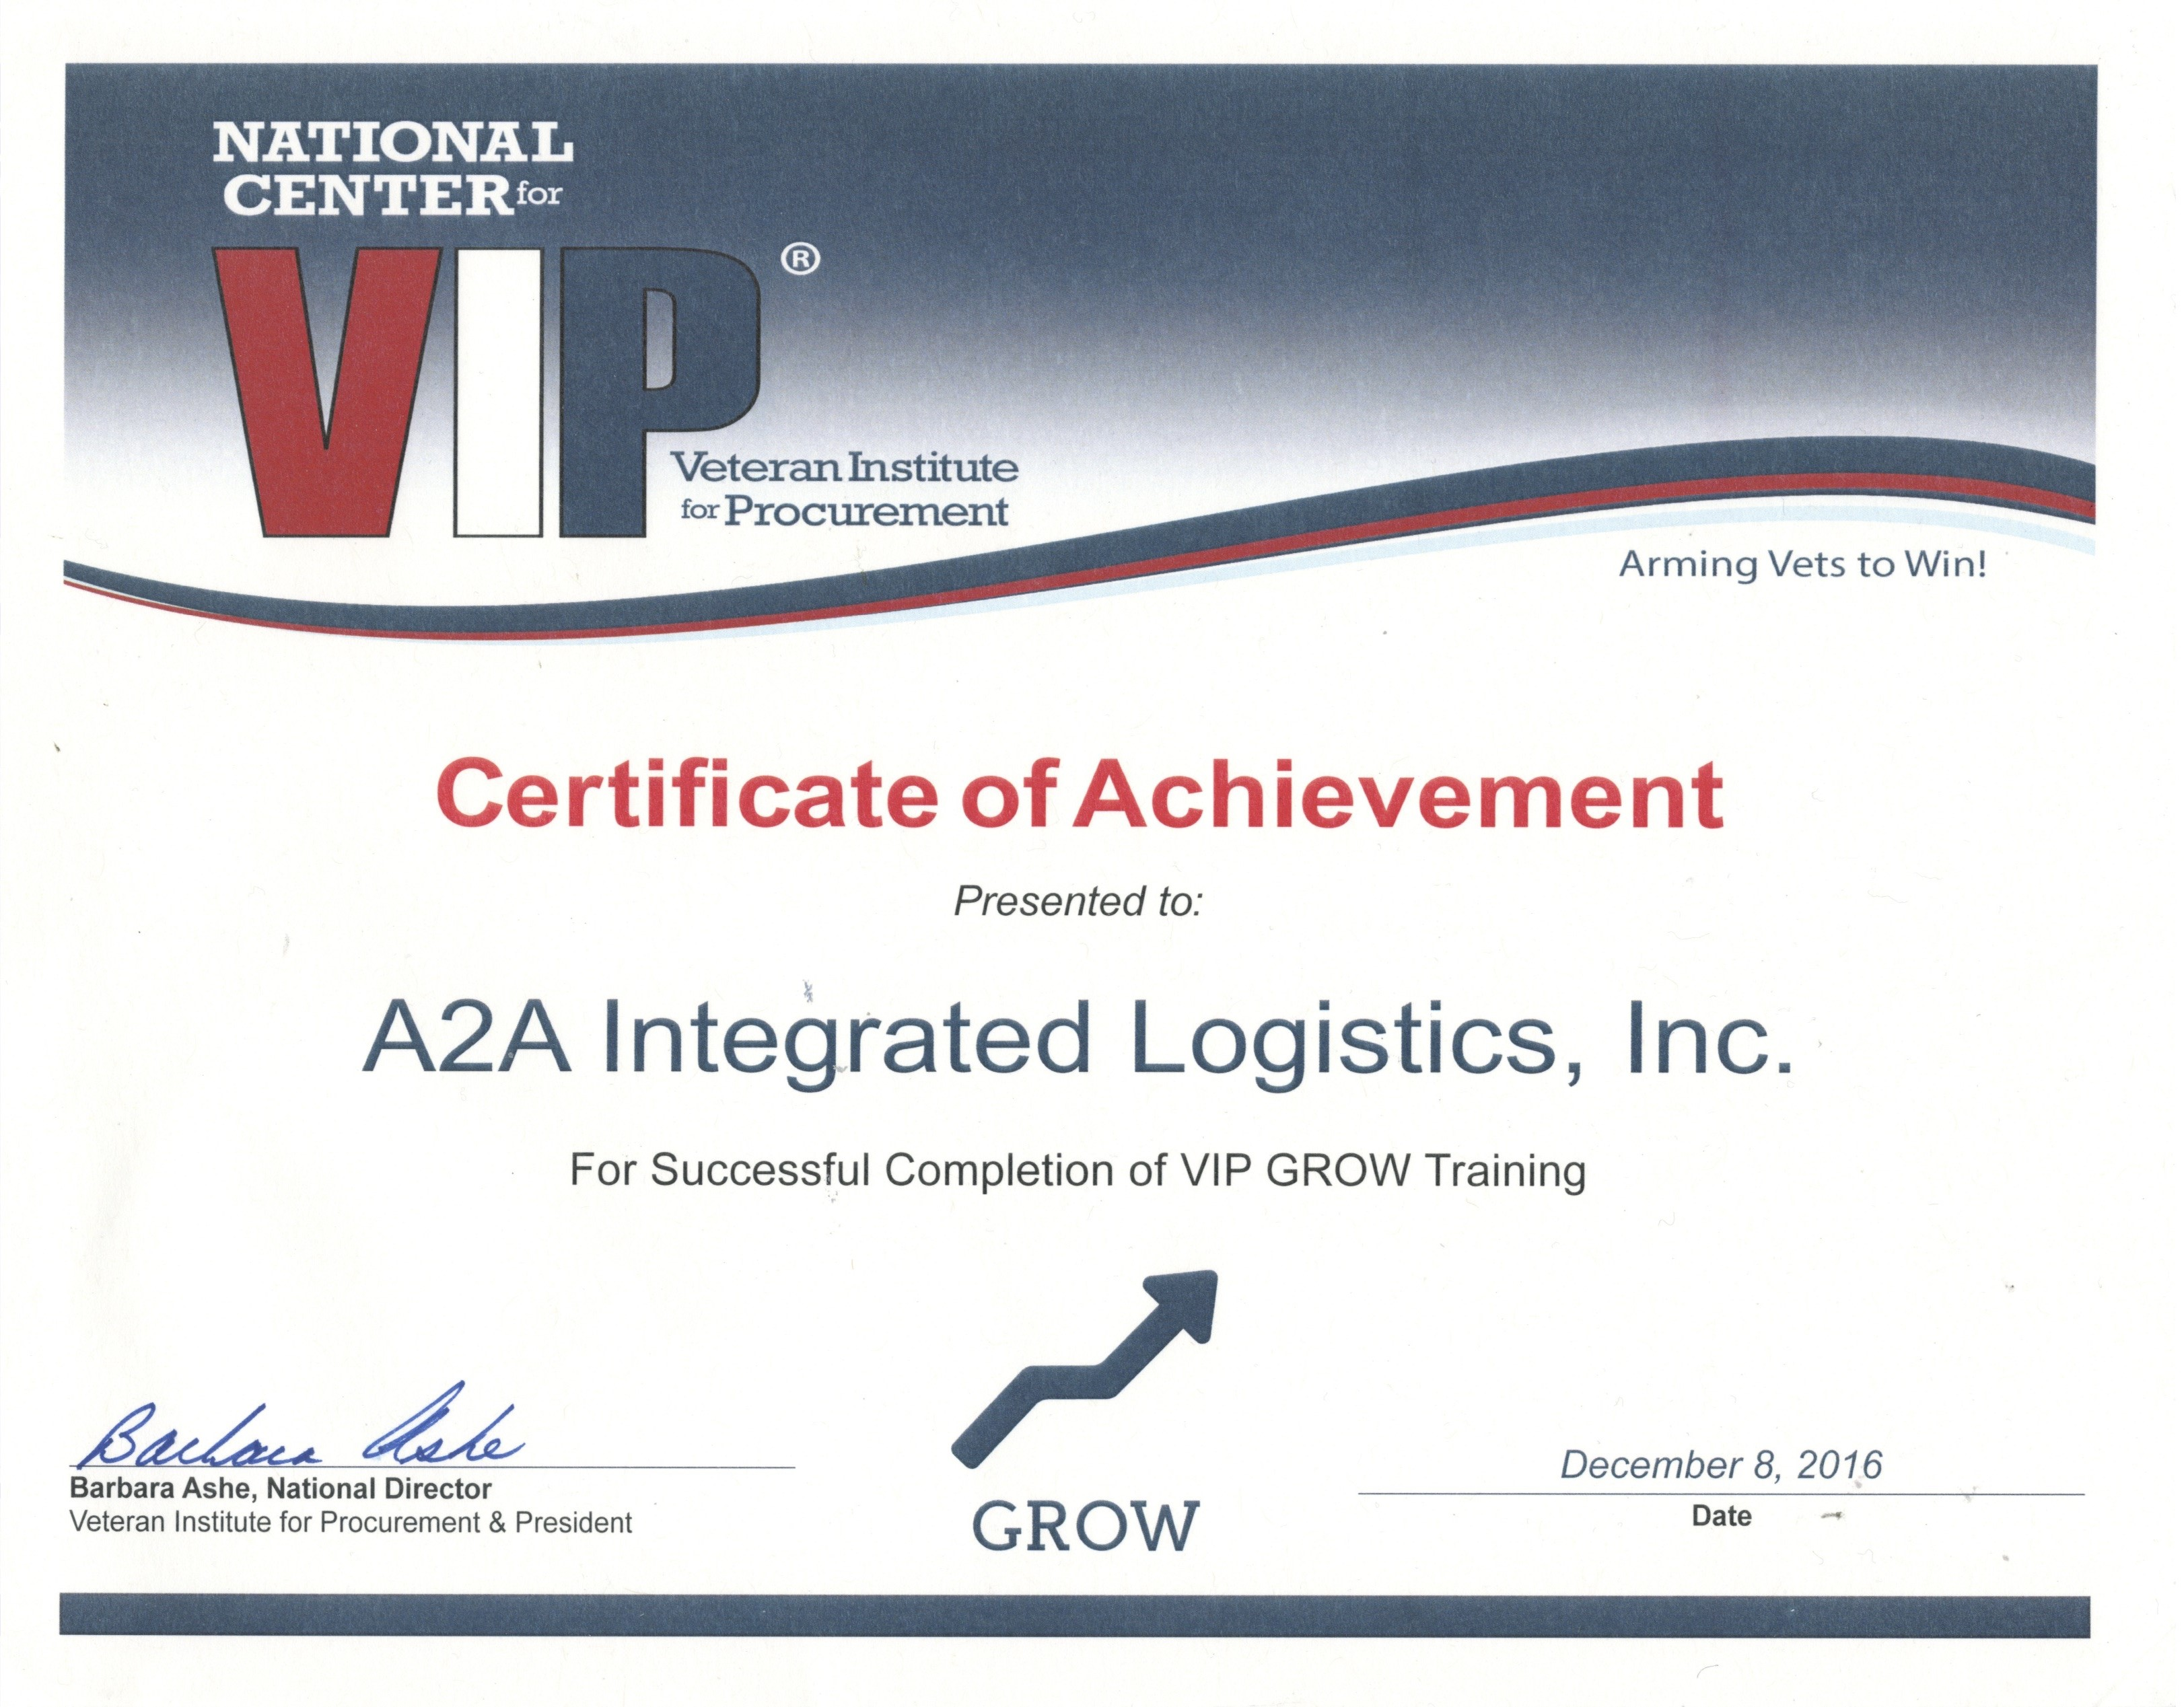 Certifications a2a logistics a2a is a certified small business disadvantaged business enterprise through the port authority of new york new jersey supporting numerous customer needs xflitez Choice Image